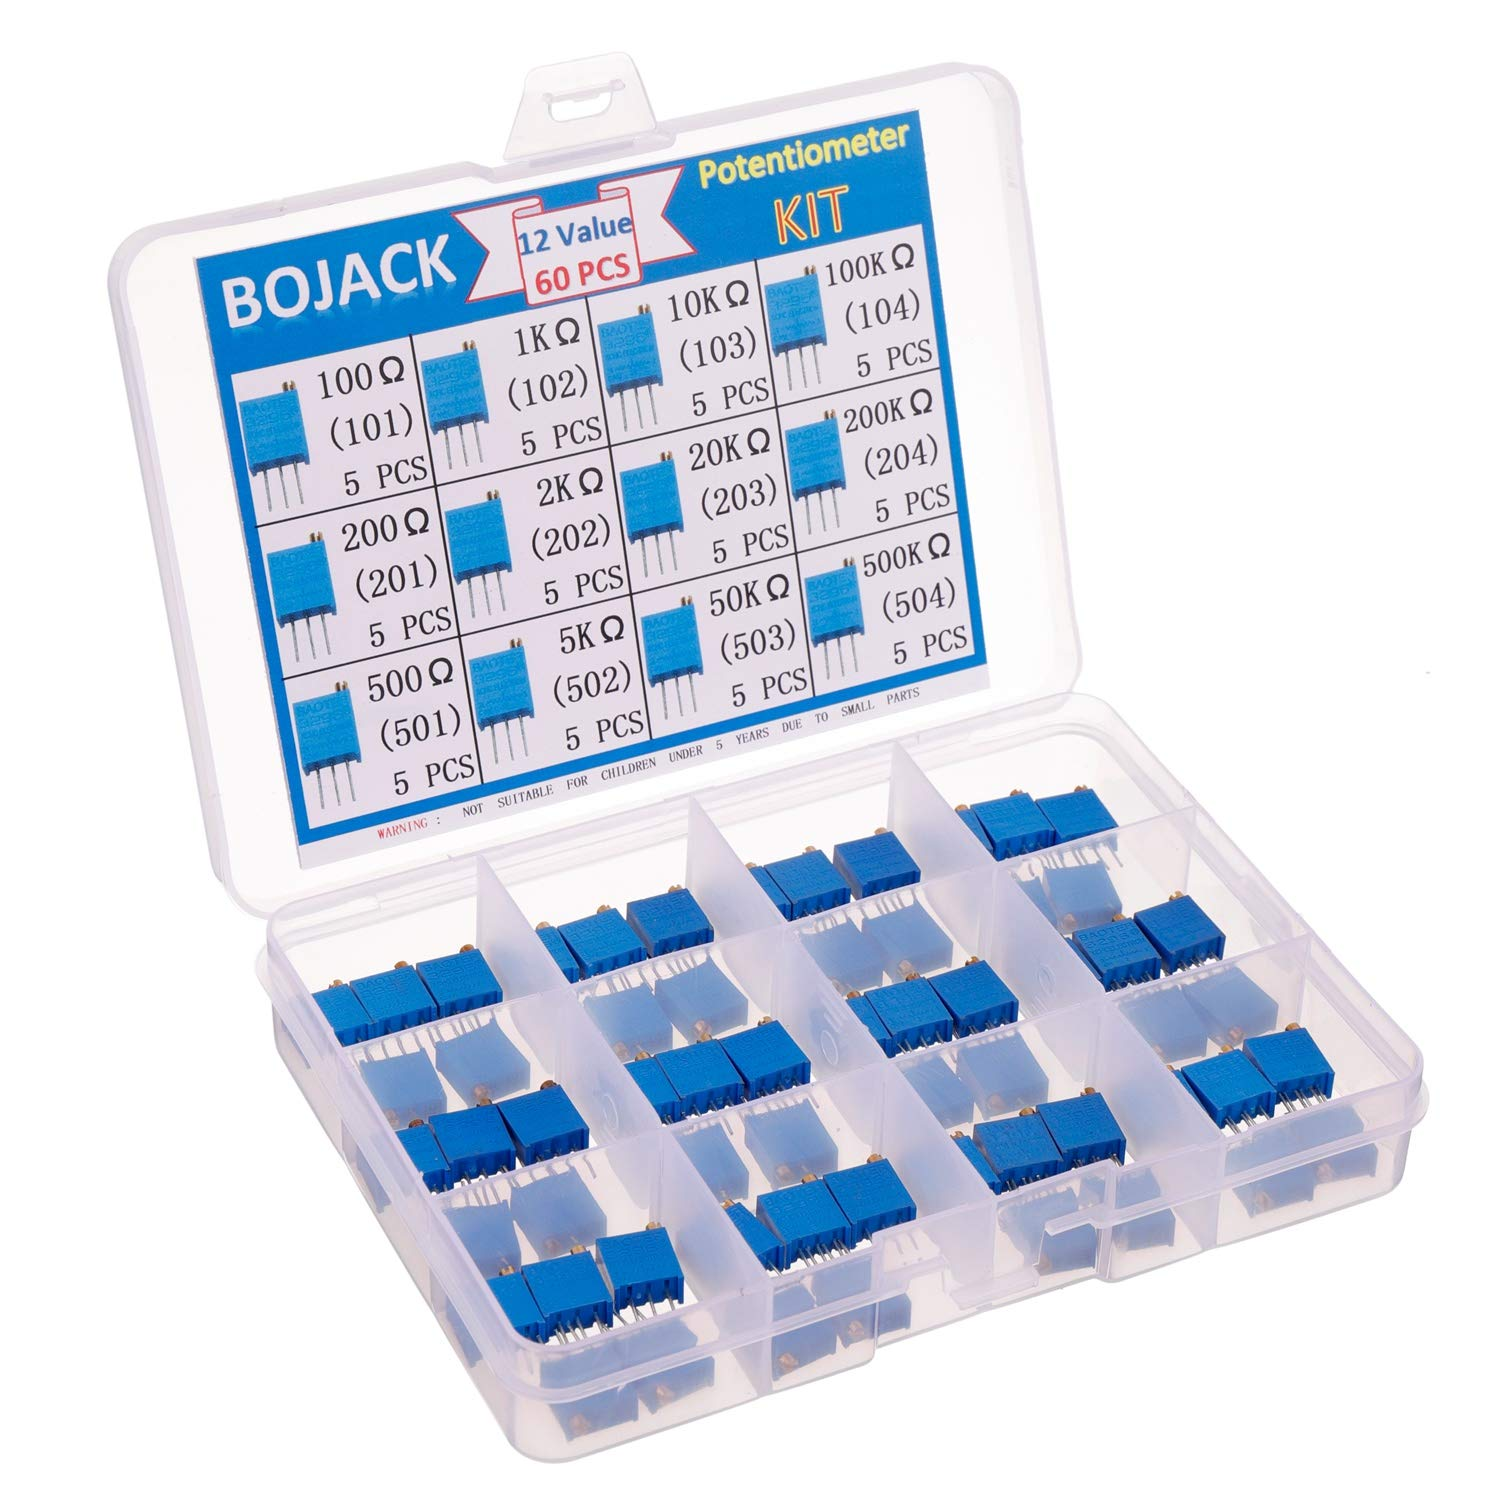 BOJACK 12 Values 60 pcs 100 to 500K ohm 3296W Multiturn Trimmer Potentiometer Assortment Kit packag in a Clear Plastic Box